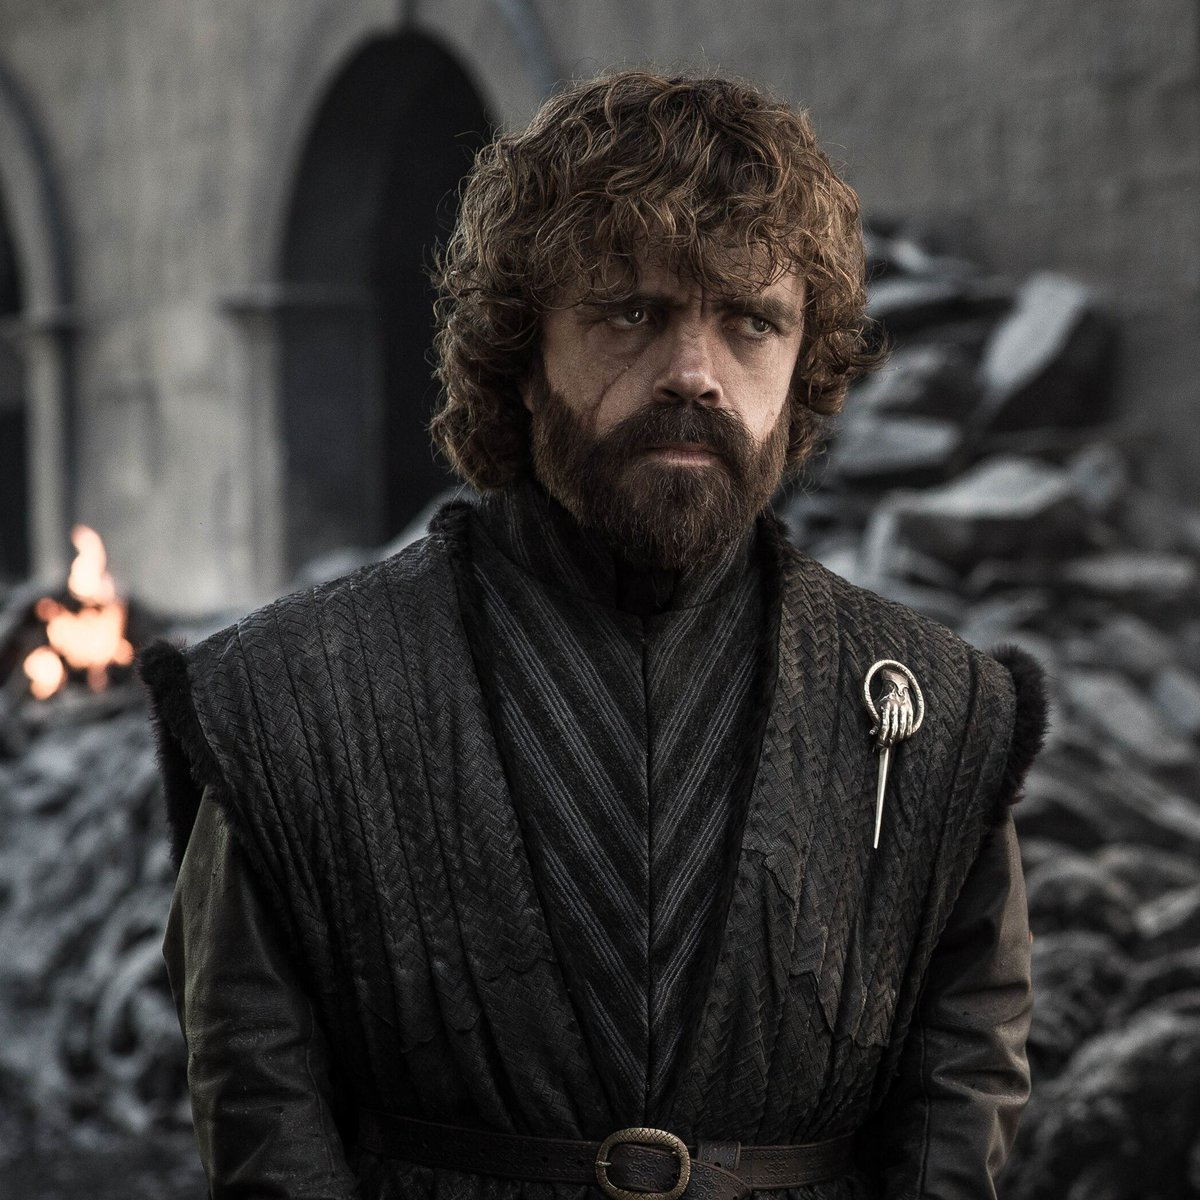 Peter Dinklage thinks D&D did an 'extraordinary' job with #GameofThrones S8 & Daenerys' fall   'For everybody to get upset because they loved a character so much and they had so much faith in that person—there were signposts all along the way for that character'  (via @NewYorker)<br>http://pic.twitter.com/W23rxgjNZG